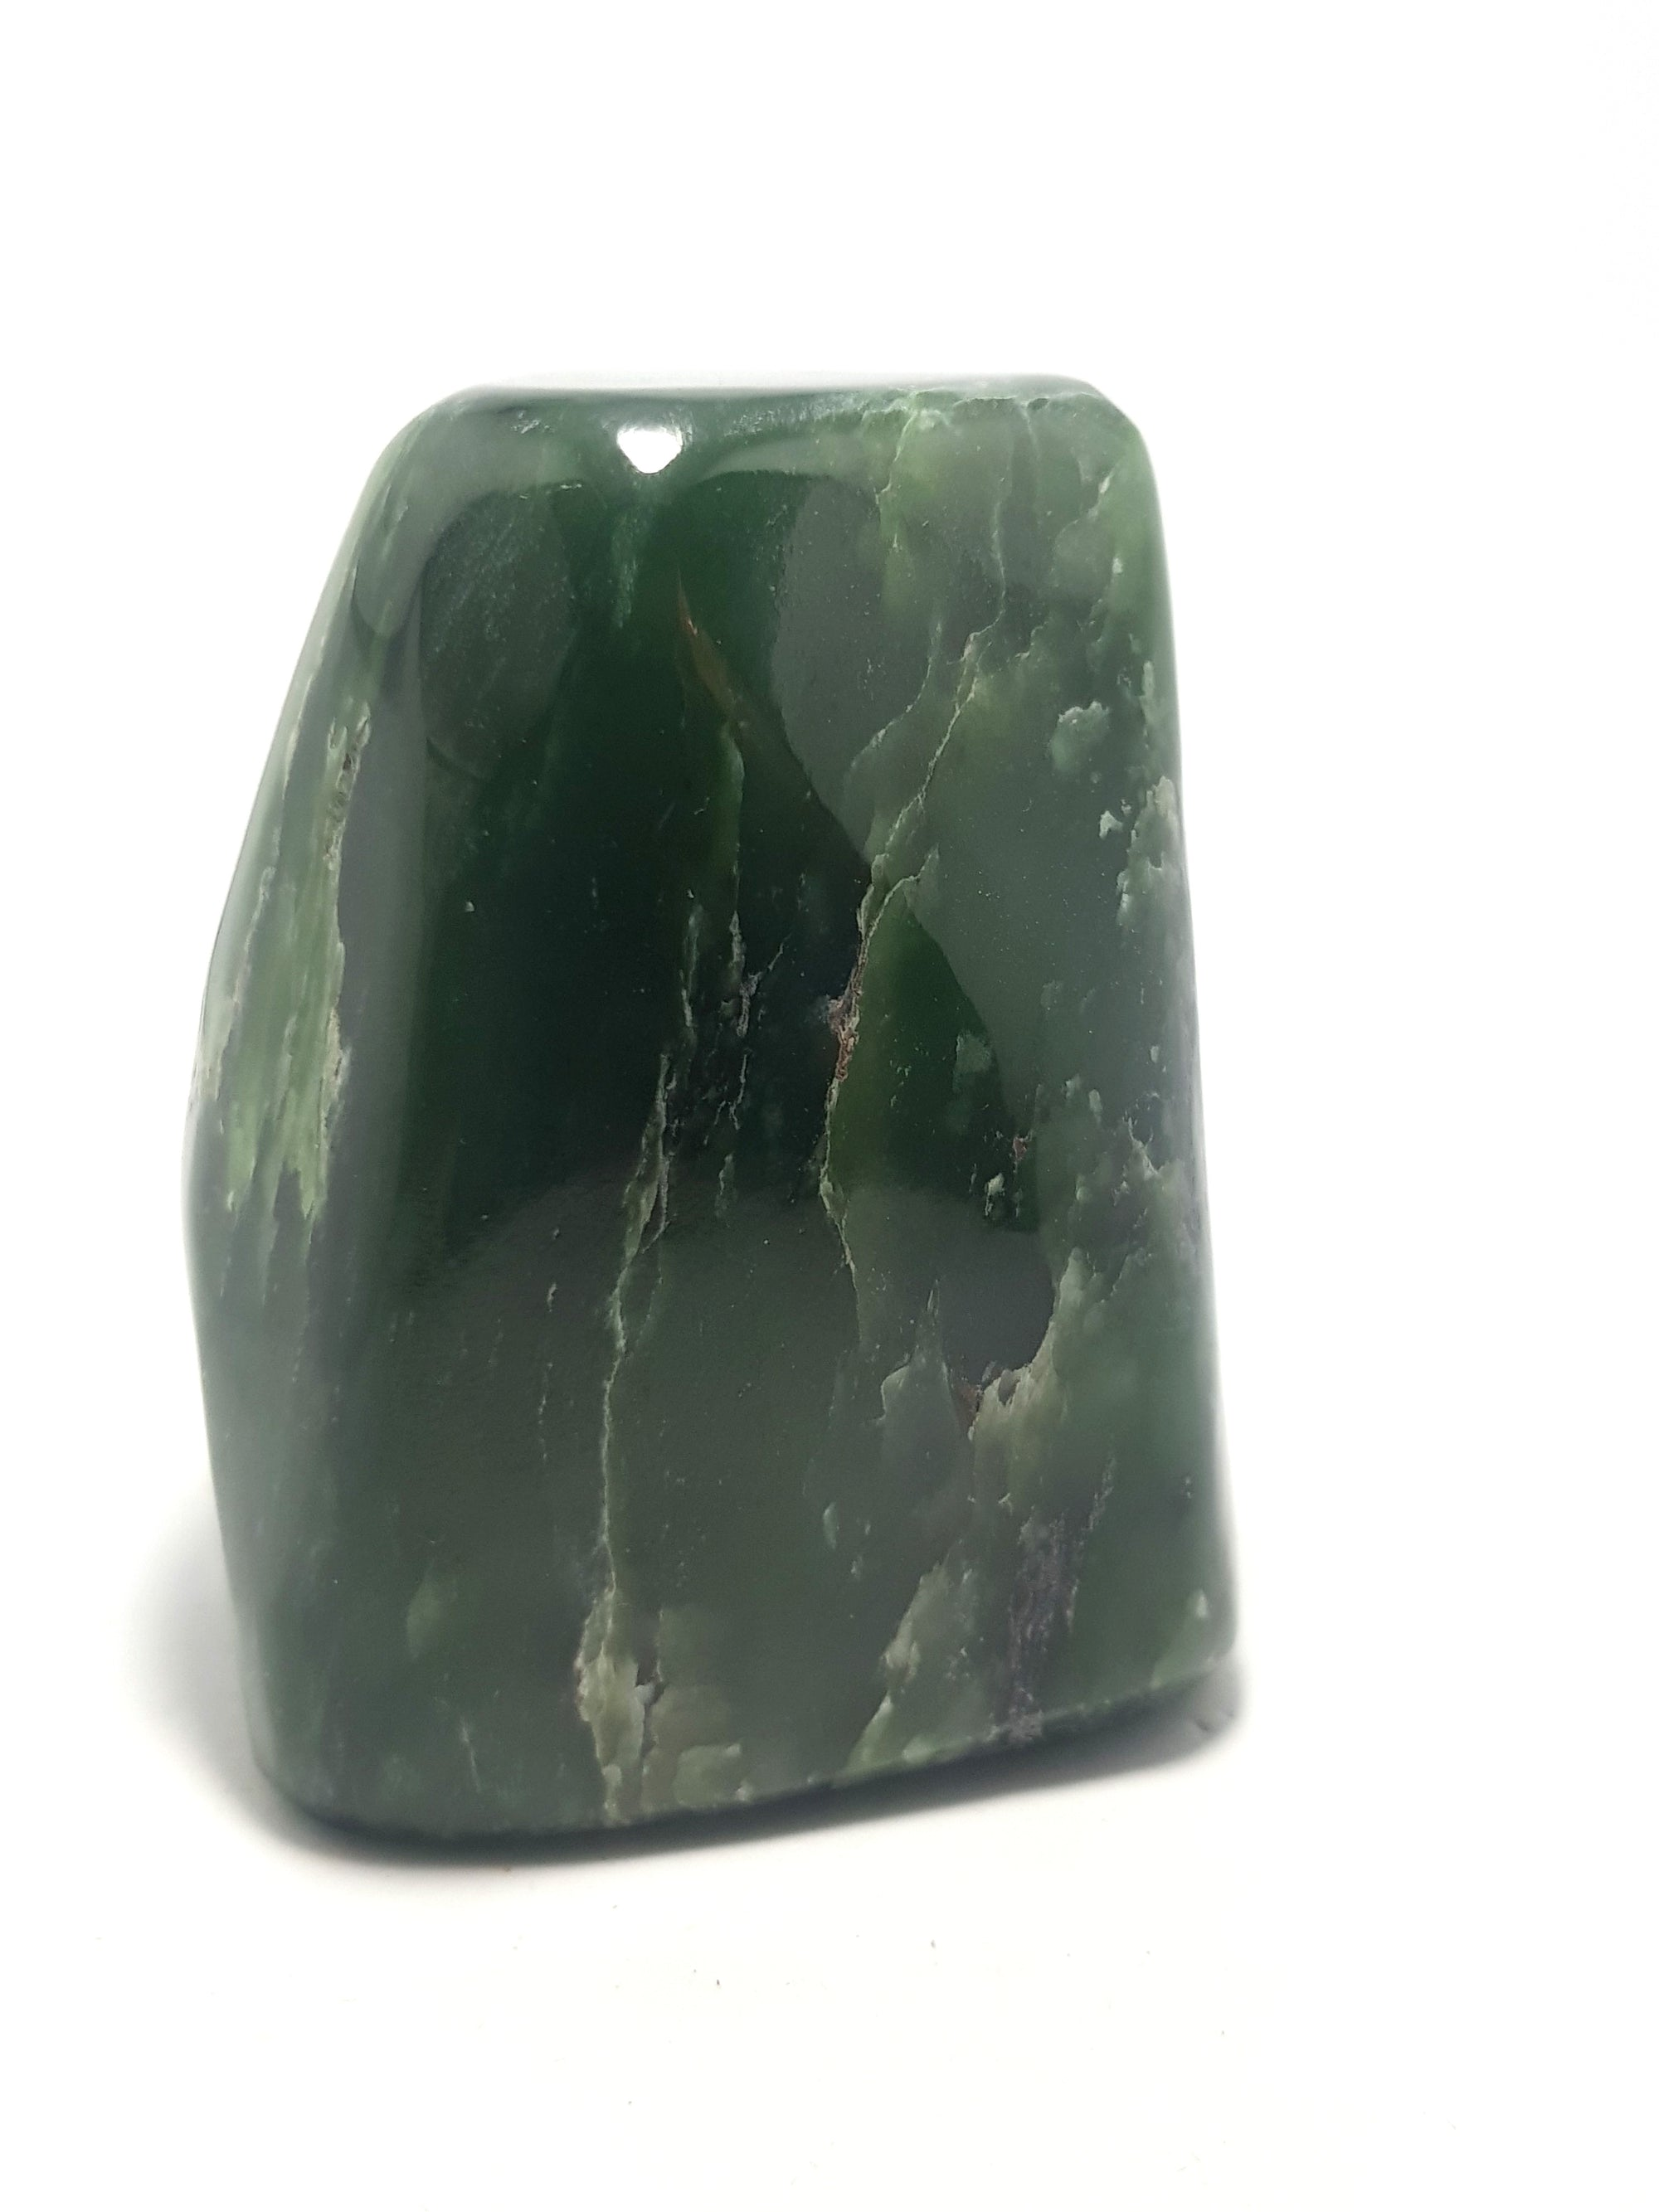 Nephrite jade freeform. Dark green with some white and green patches